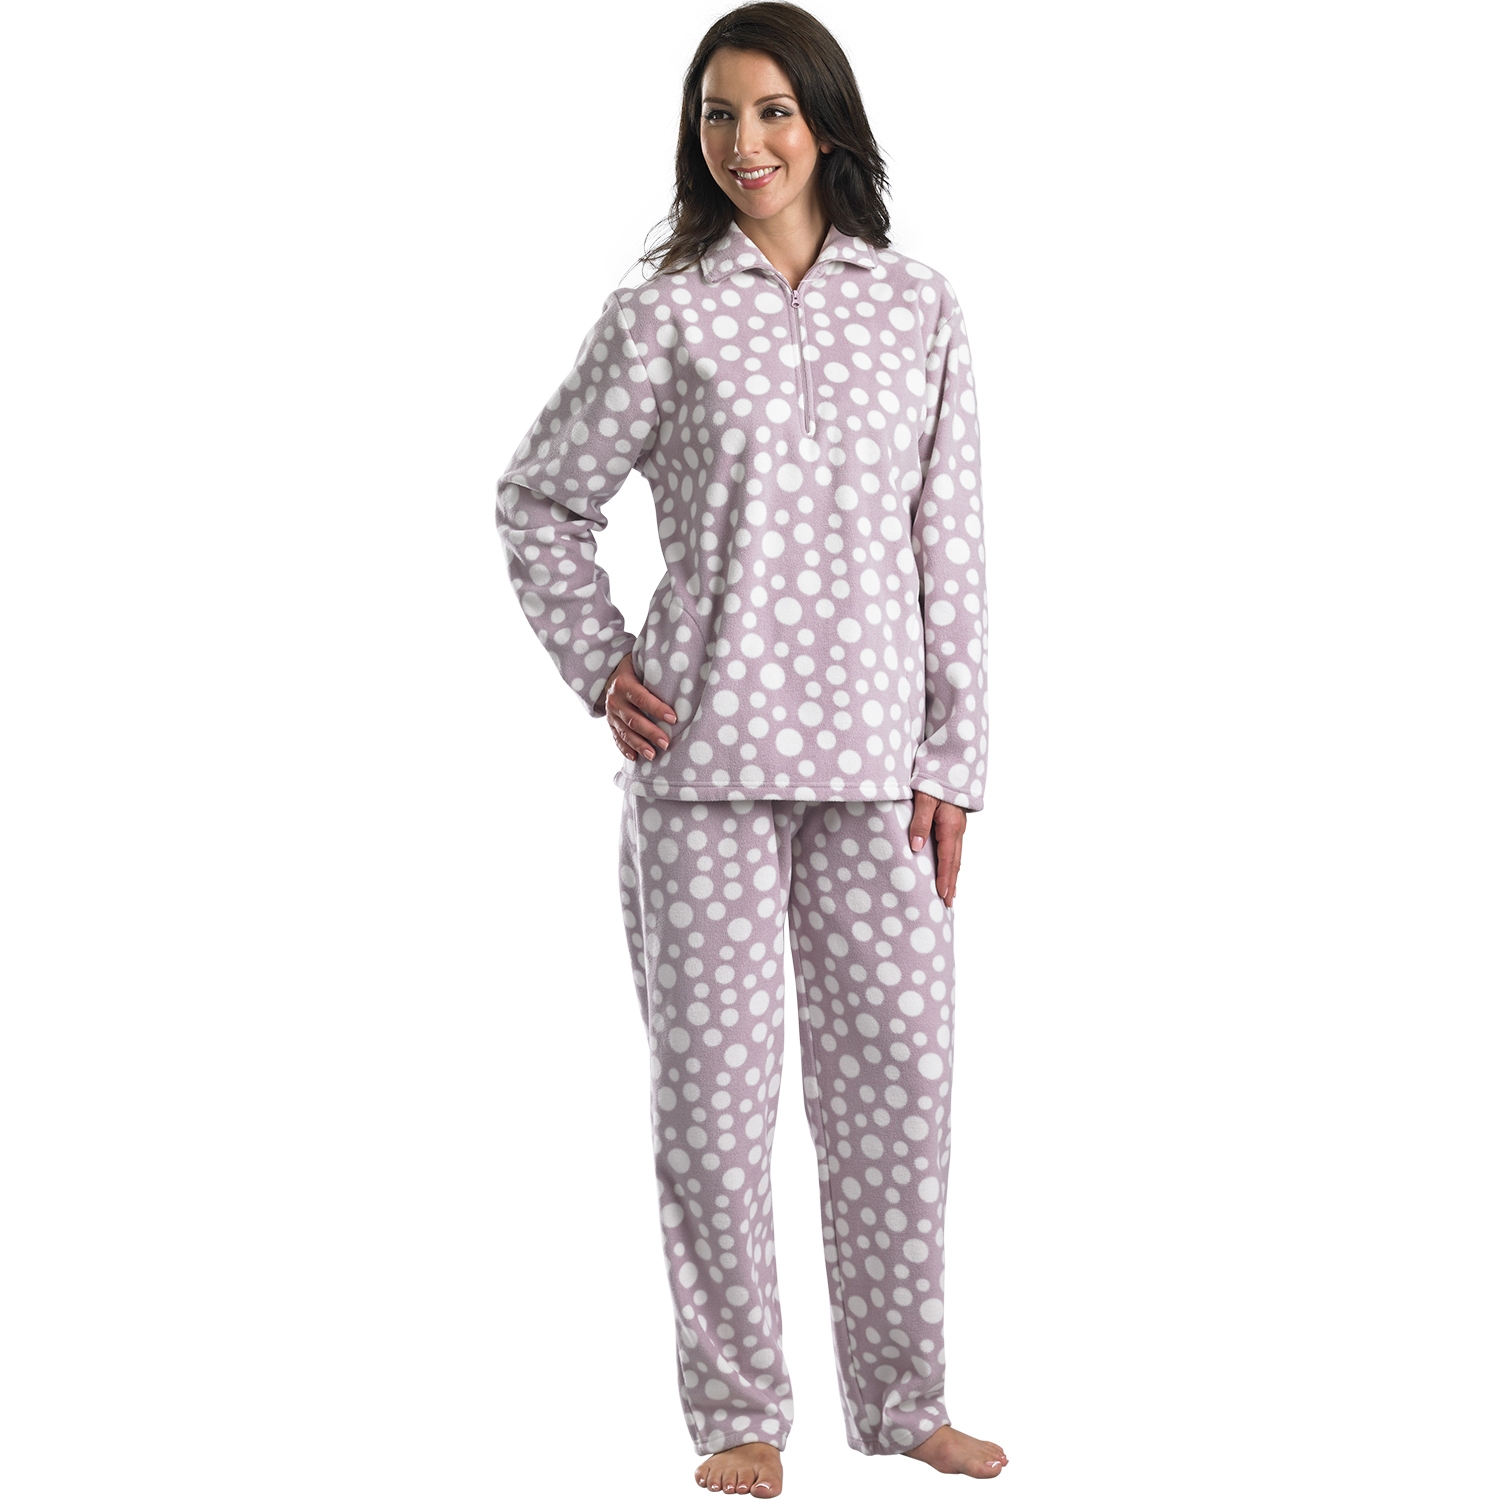 Our collection of women's nightwear is designed to keep you comfortable all night. On warm evenings, opt for a lightweight nightshirt in a pastel hue or a % .